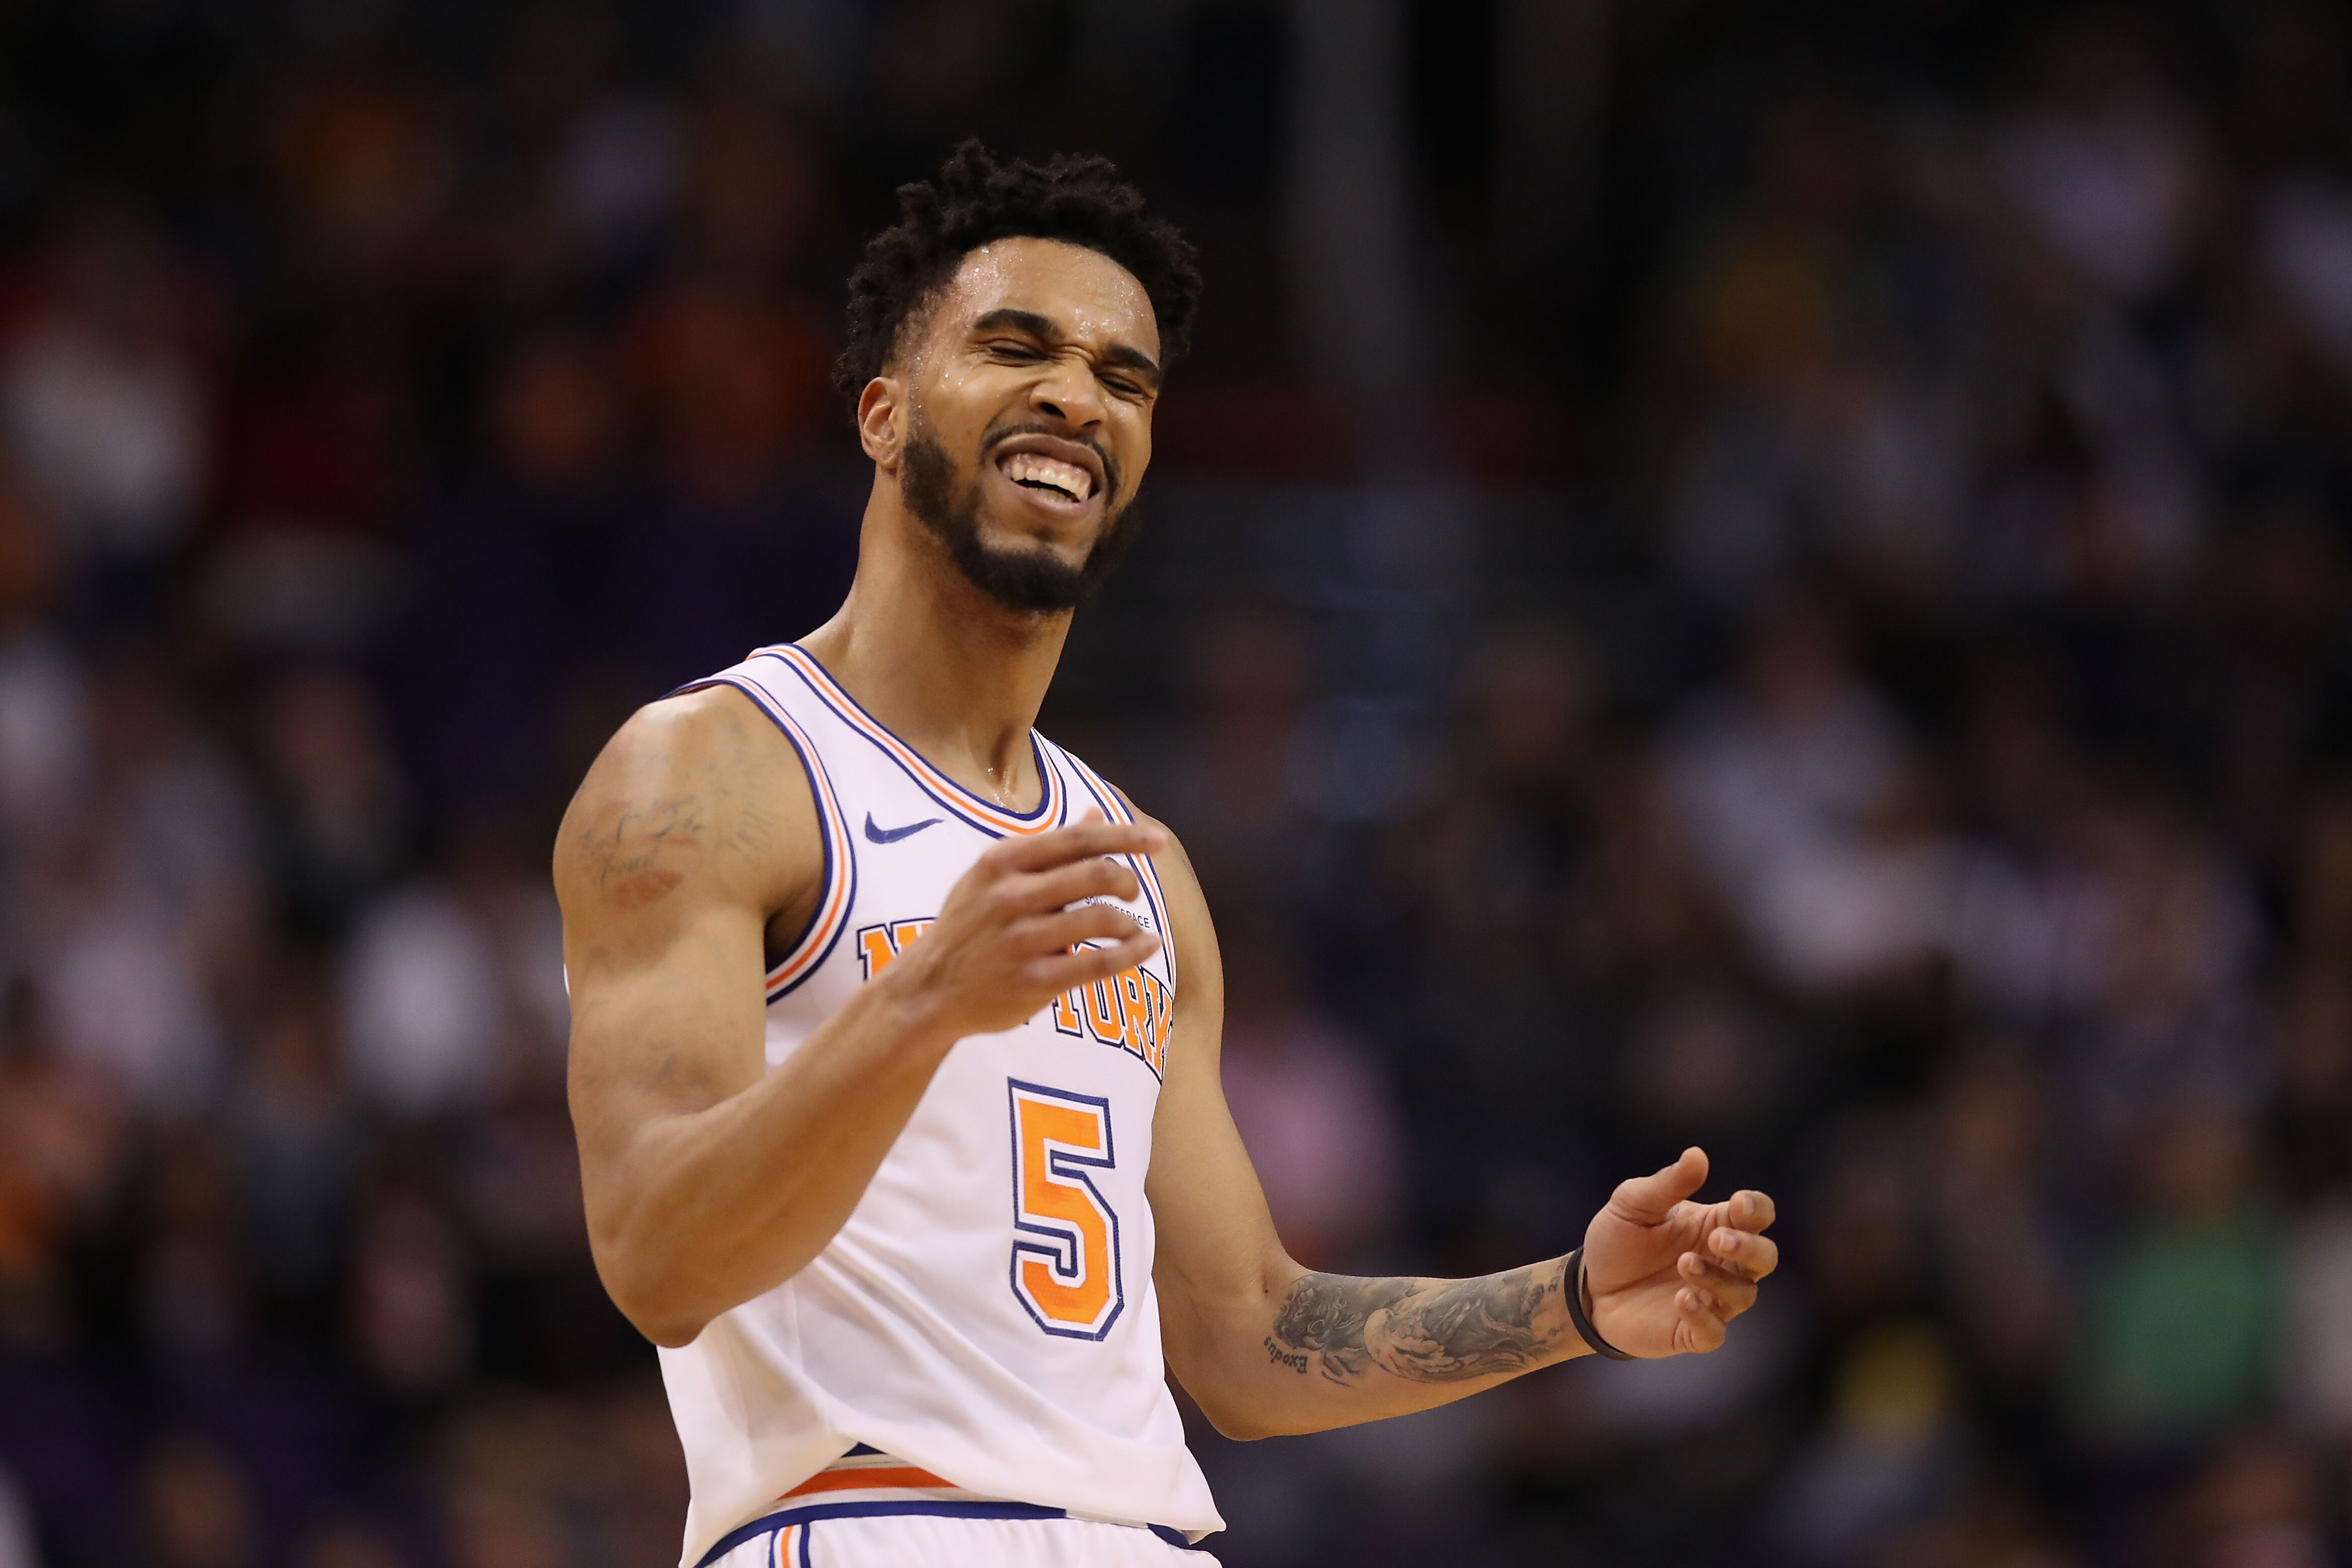 New York Knicks: Courtney Lee might want to leave the Knicks, but should he want to?